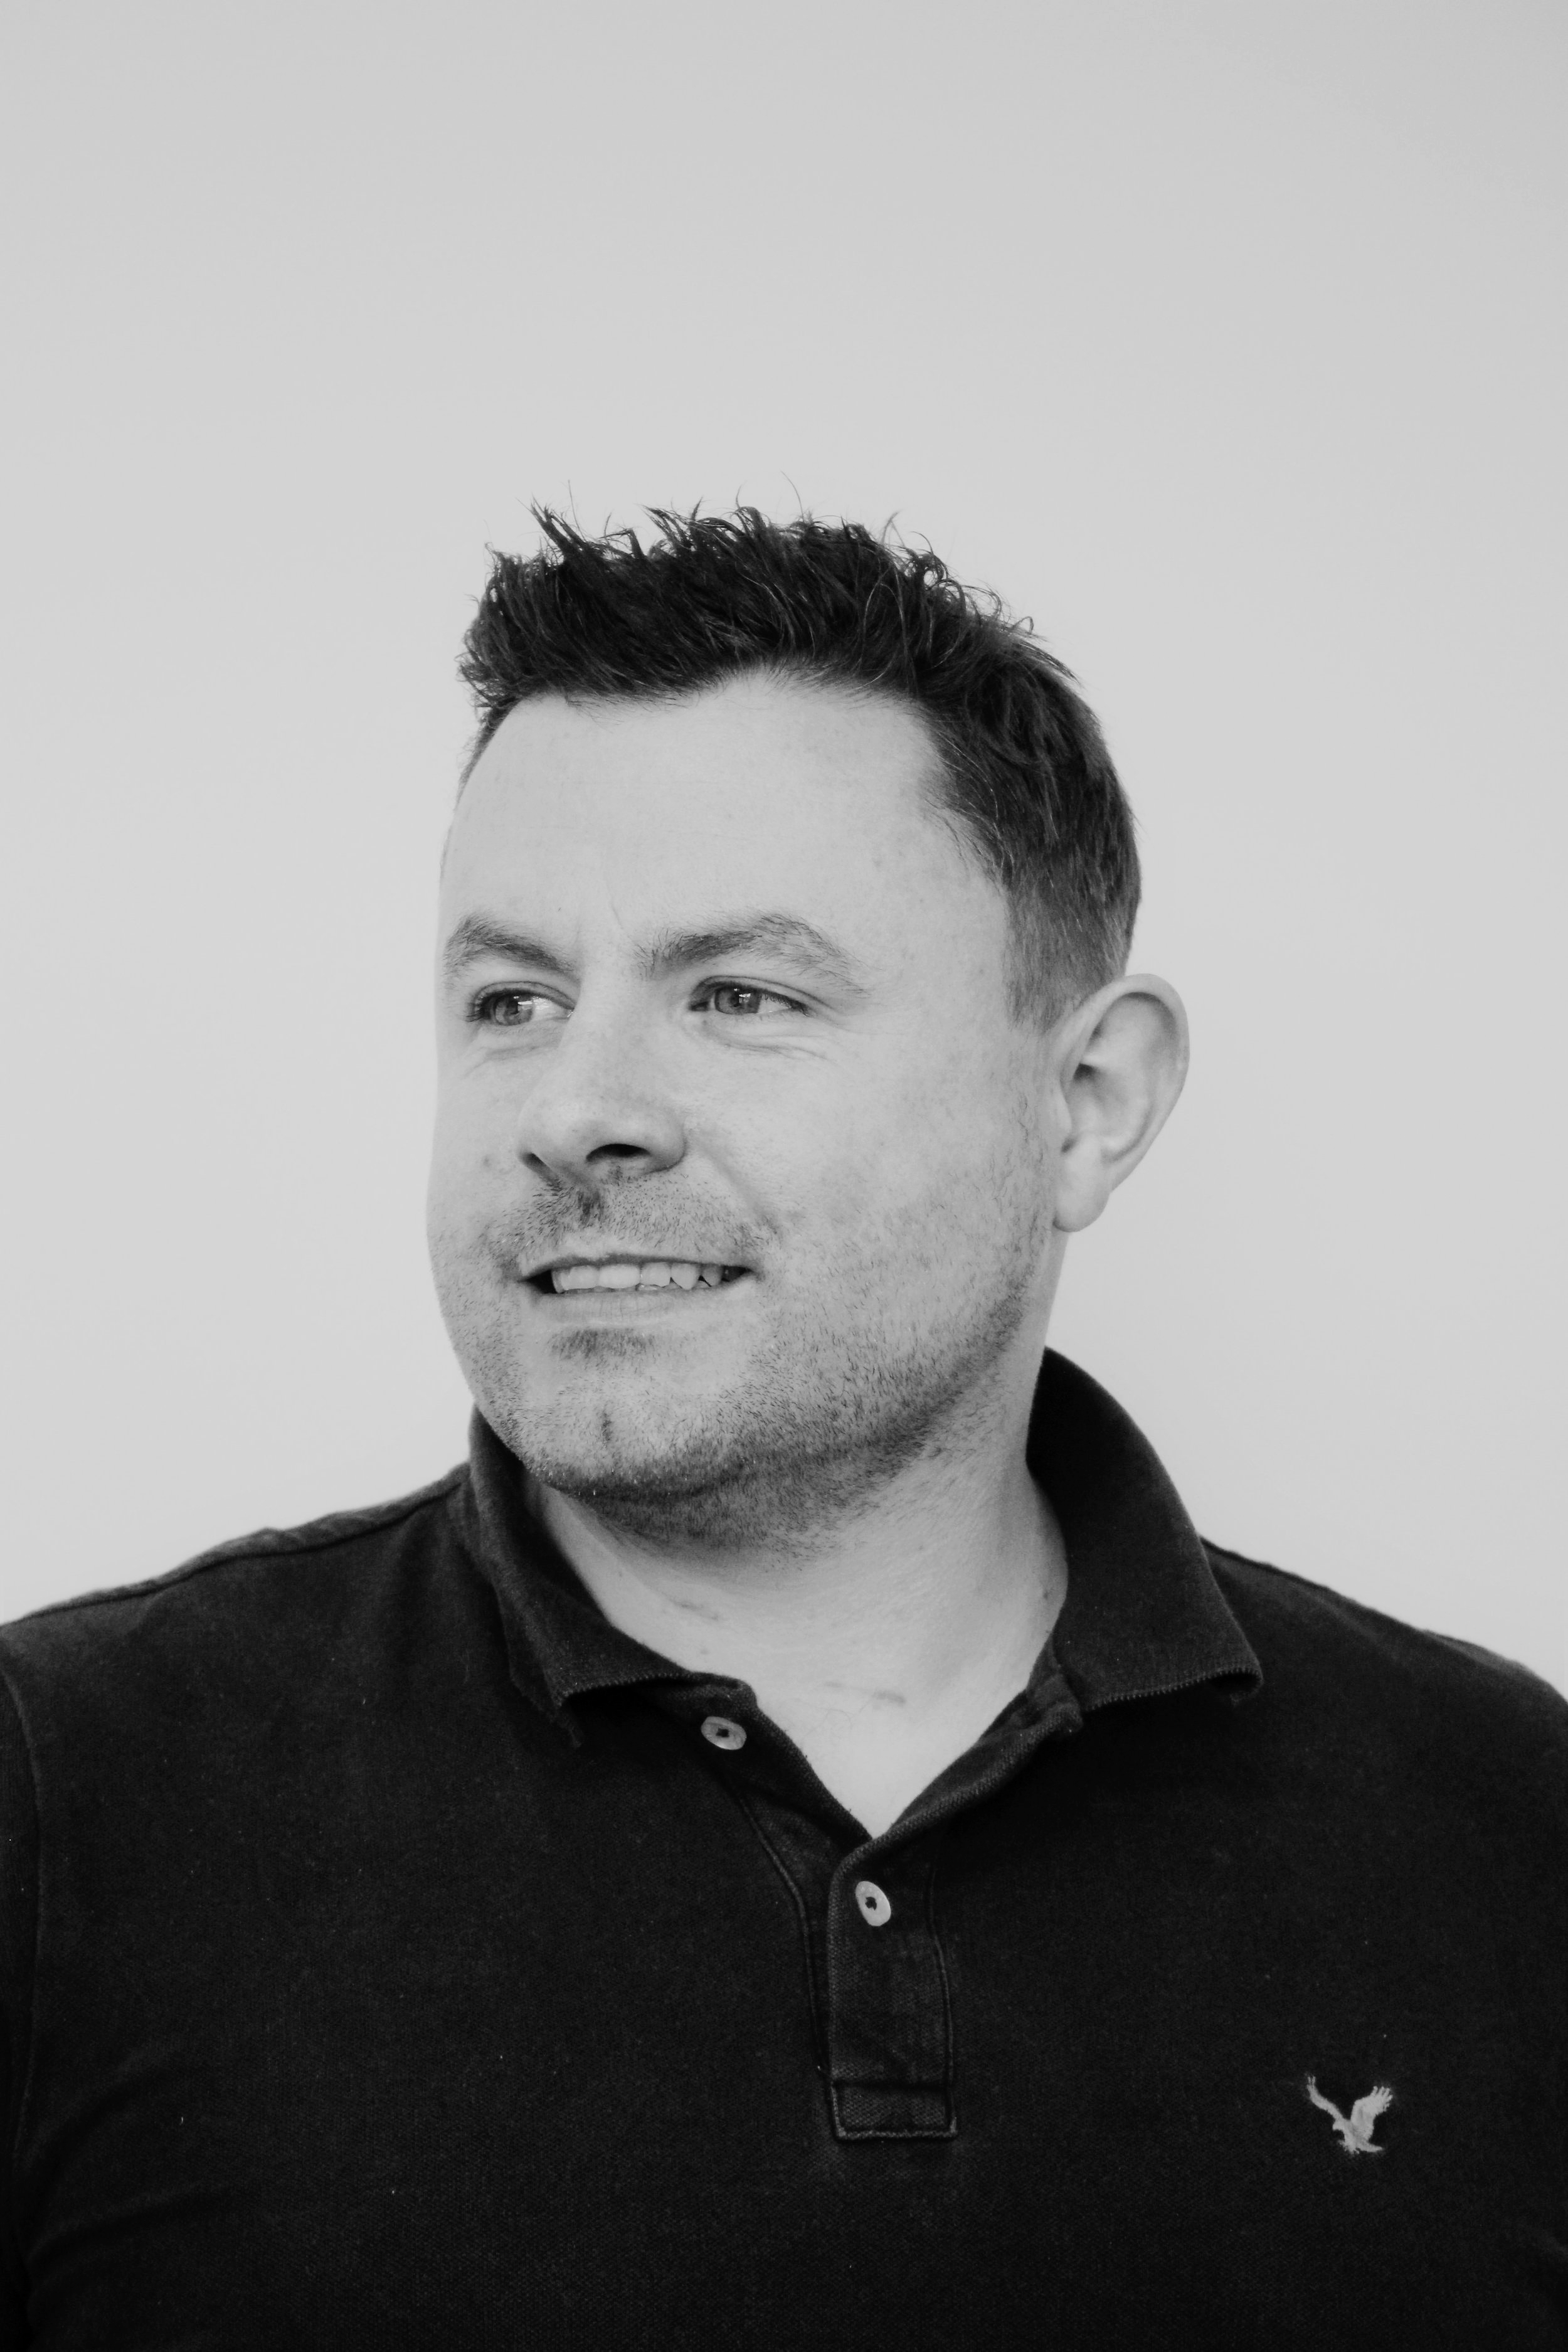 Gareth has over 10 years experience in the food industry, specialising in retail, export and manufacturing, mostly in high impact commercial roles. Gareth consistently develops successful commercial strategies for sustainable business growth, new market entry and improving profitability .   Gareth has also developed and launched his own brand into the market.